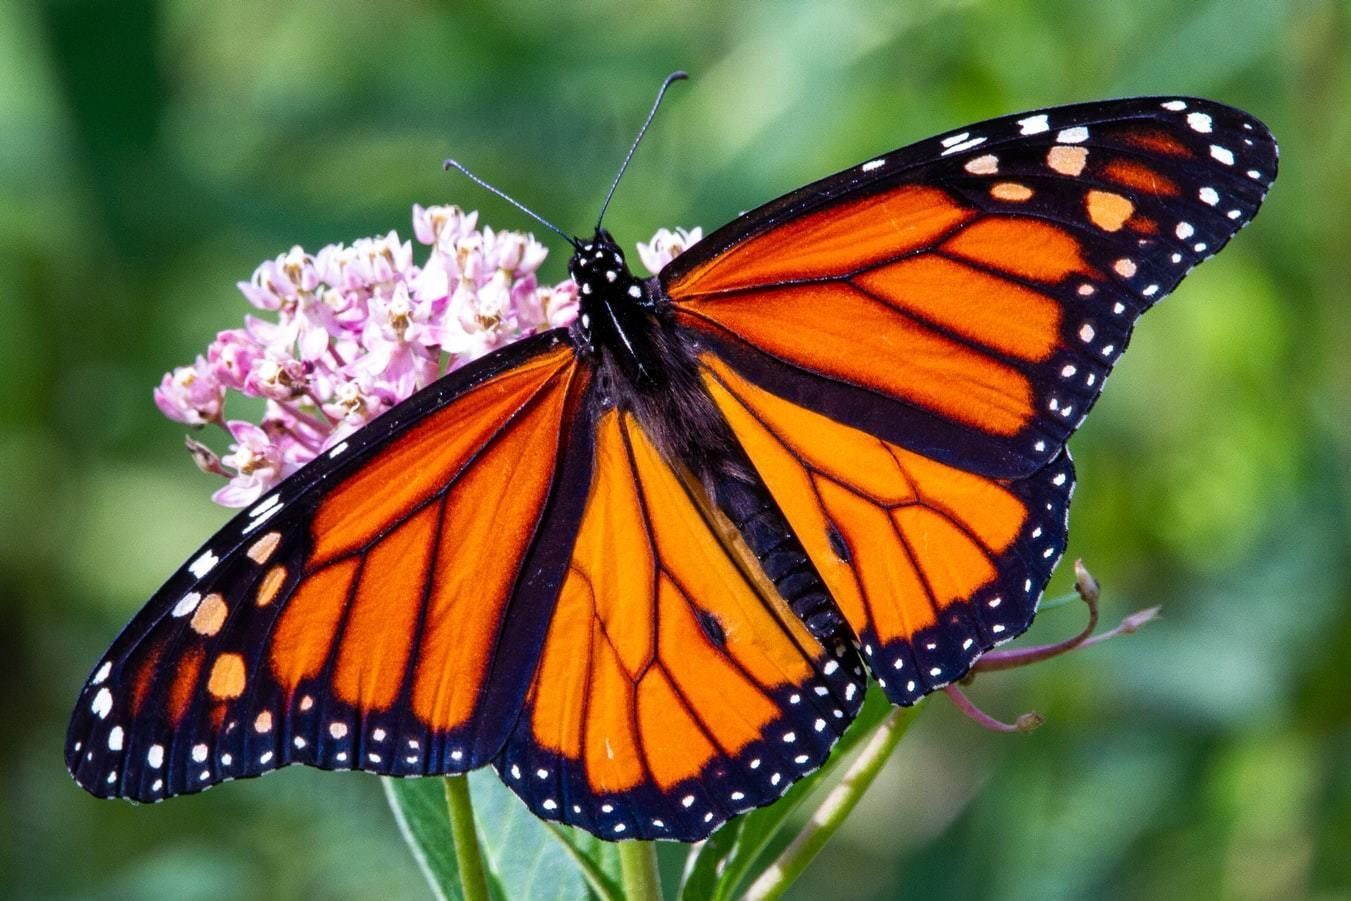 The monarch butterfly is dependent on finding milkweed plants throughout its migration to survive.